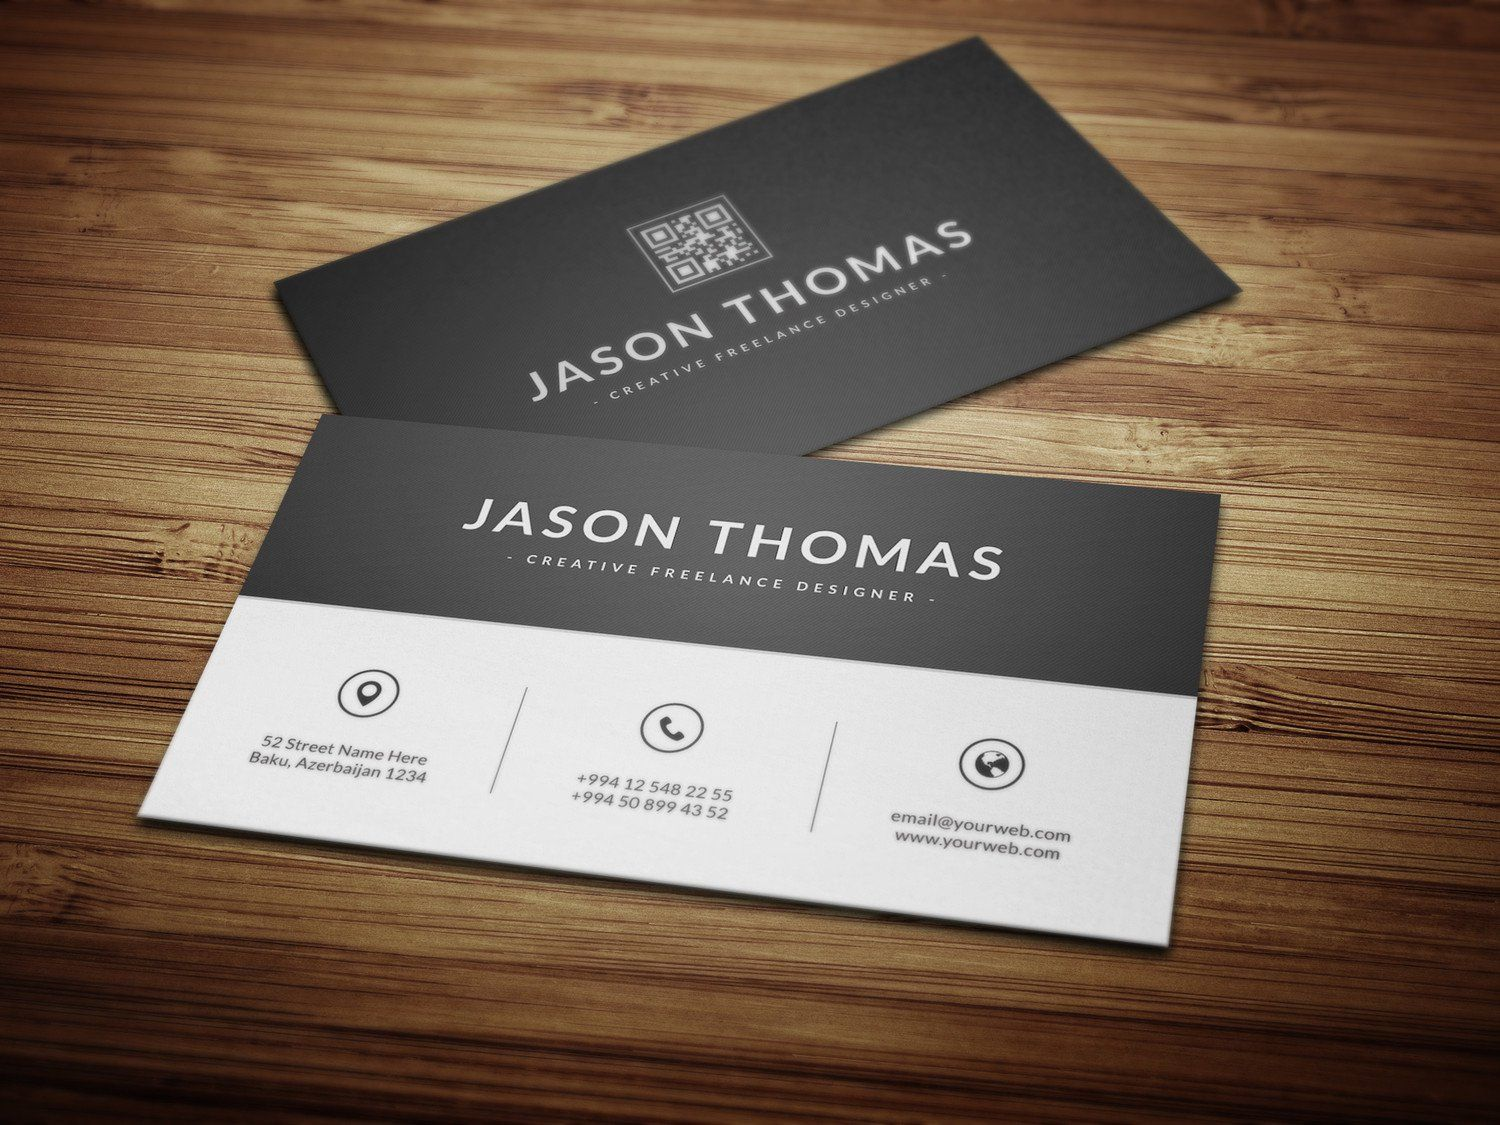 business cards httpsyandexuaimagessearchp2 - Business Card Design Ideas